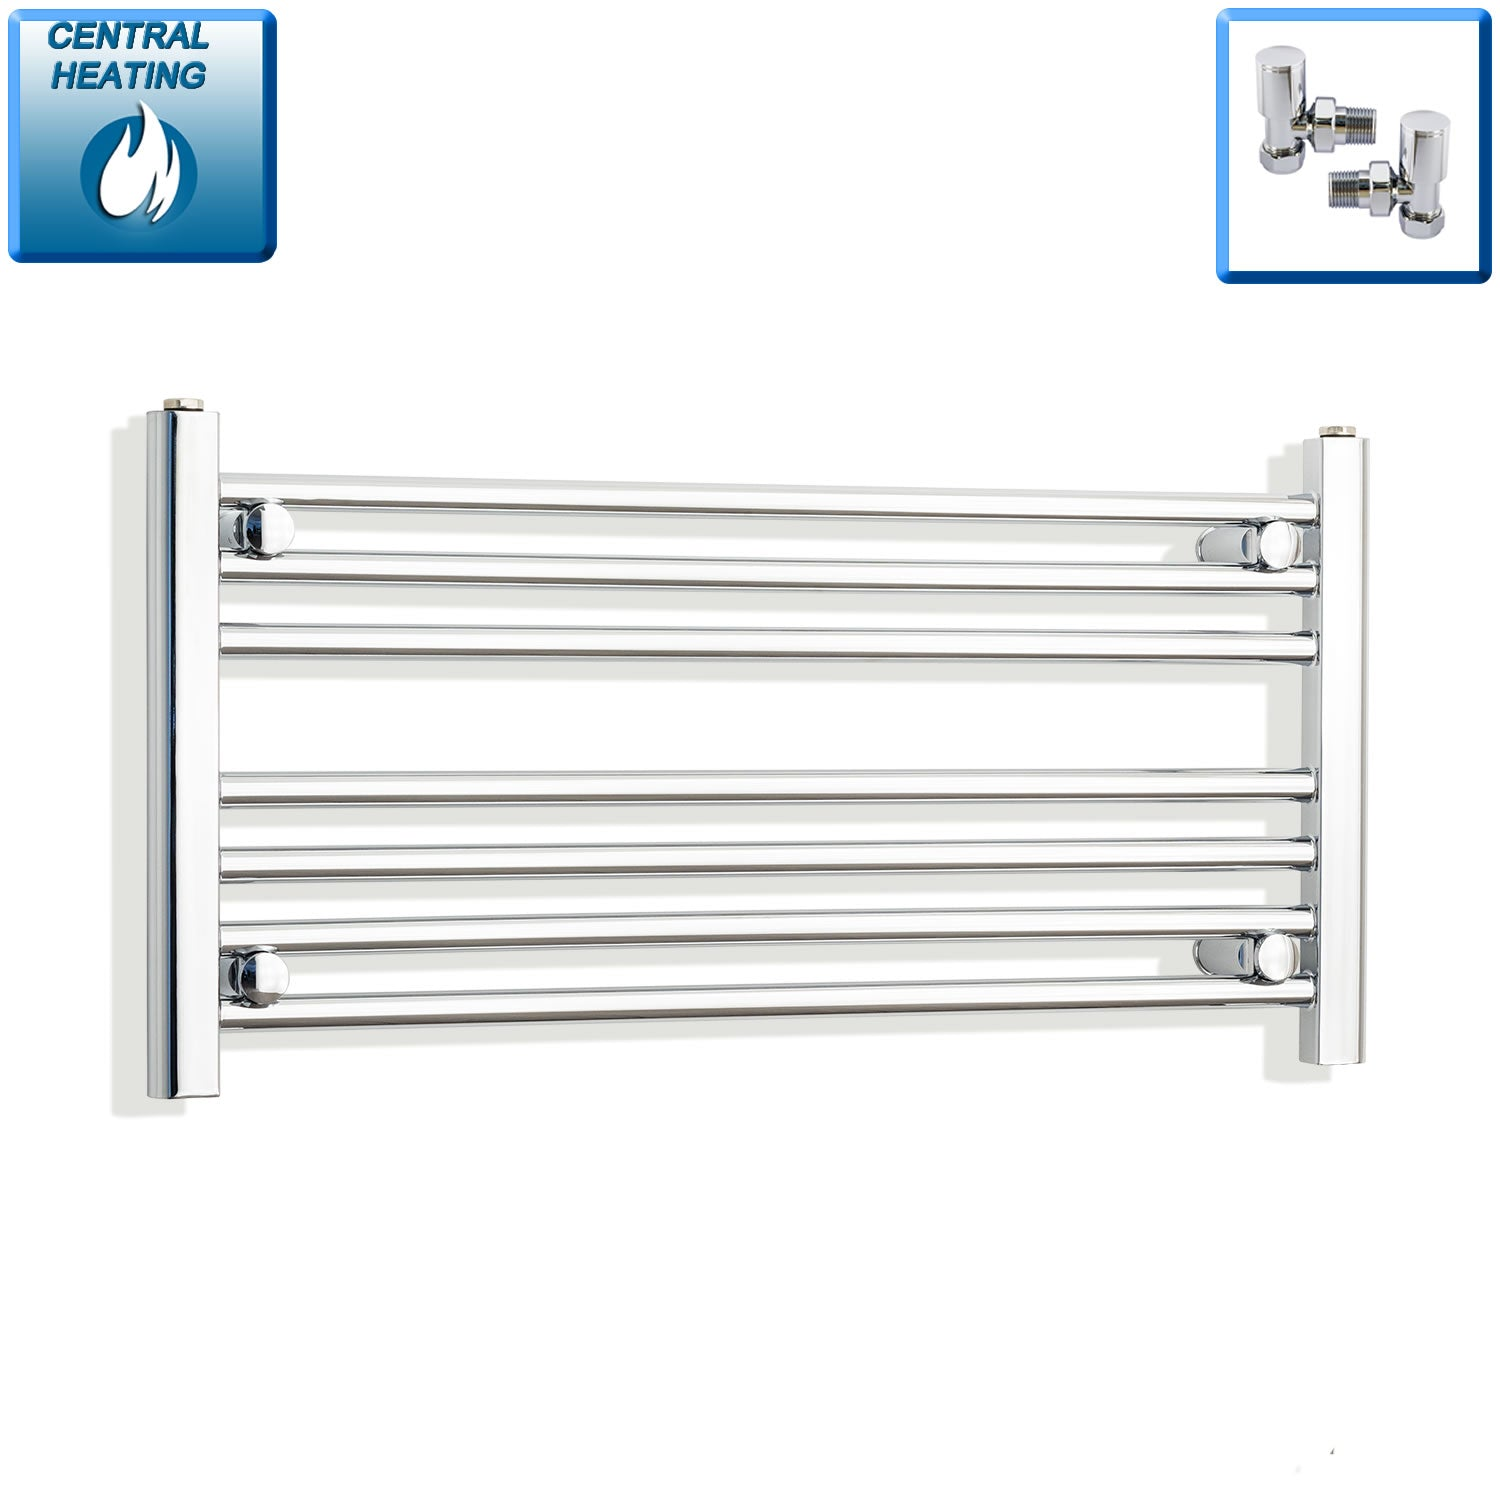 900mm Wide 400mm High Chrome Towel Rail Radiator With Angled Valve